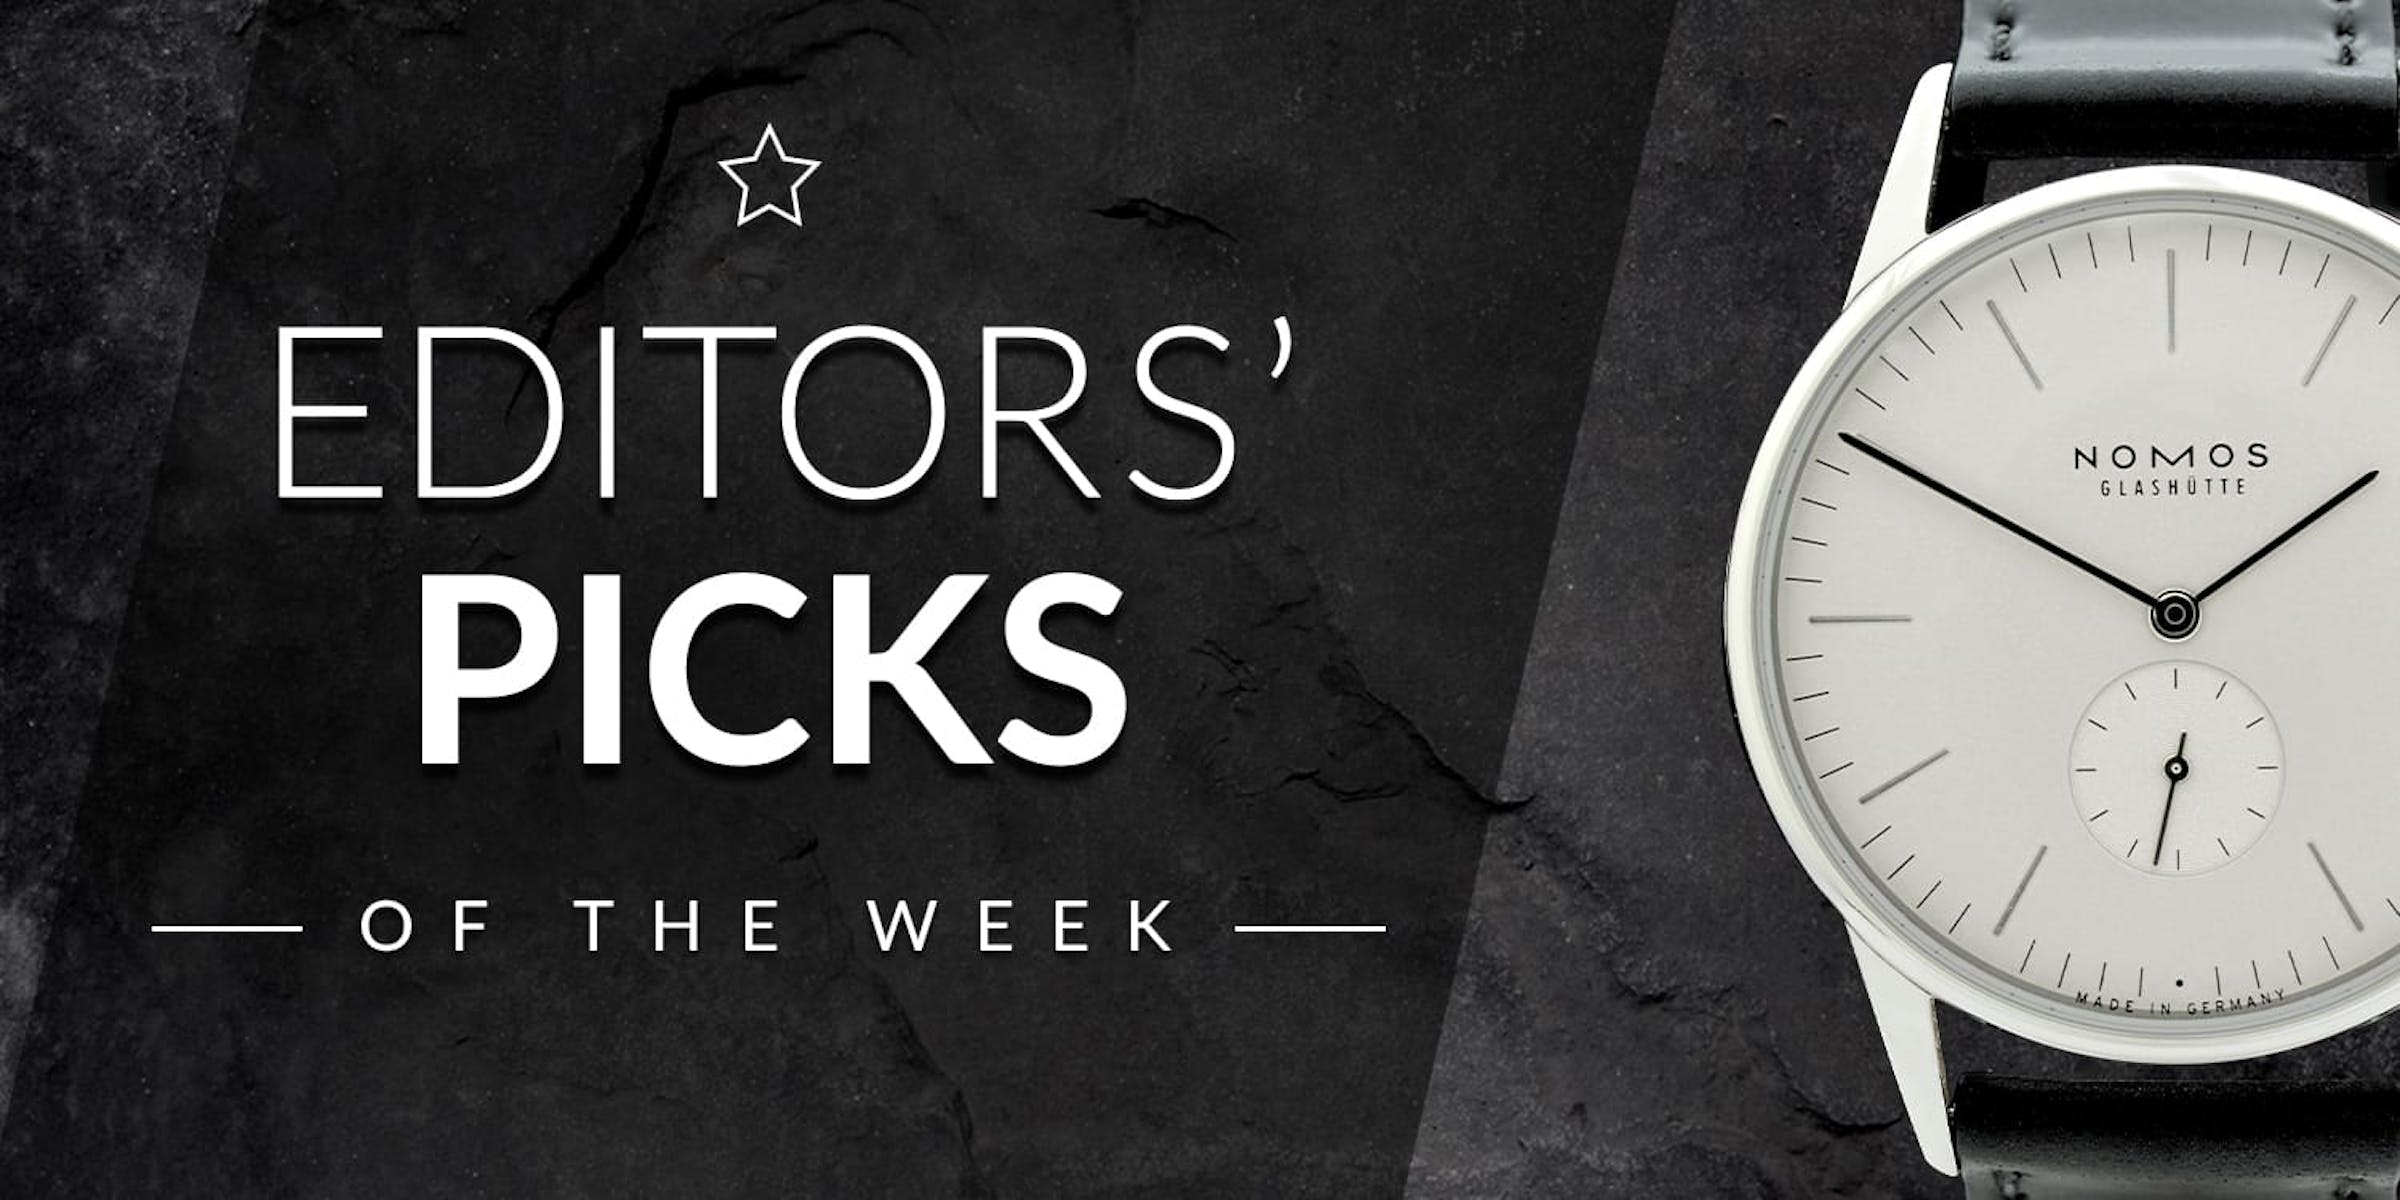 14-Editors-Picks-Nomos-Moser-Omega_EN_DE